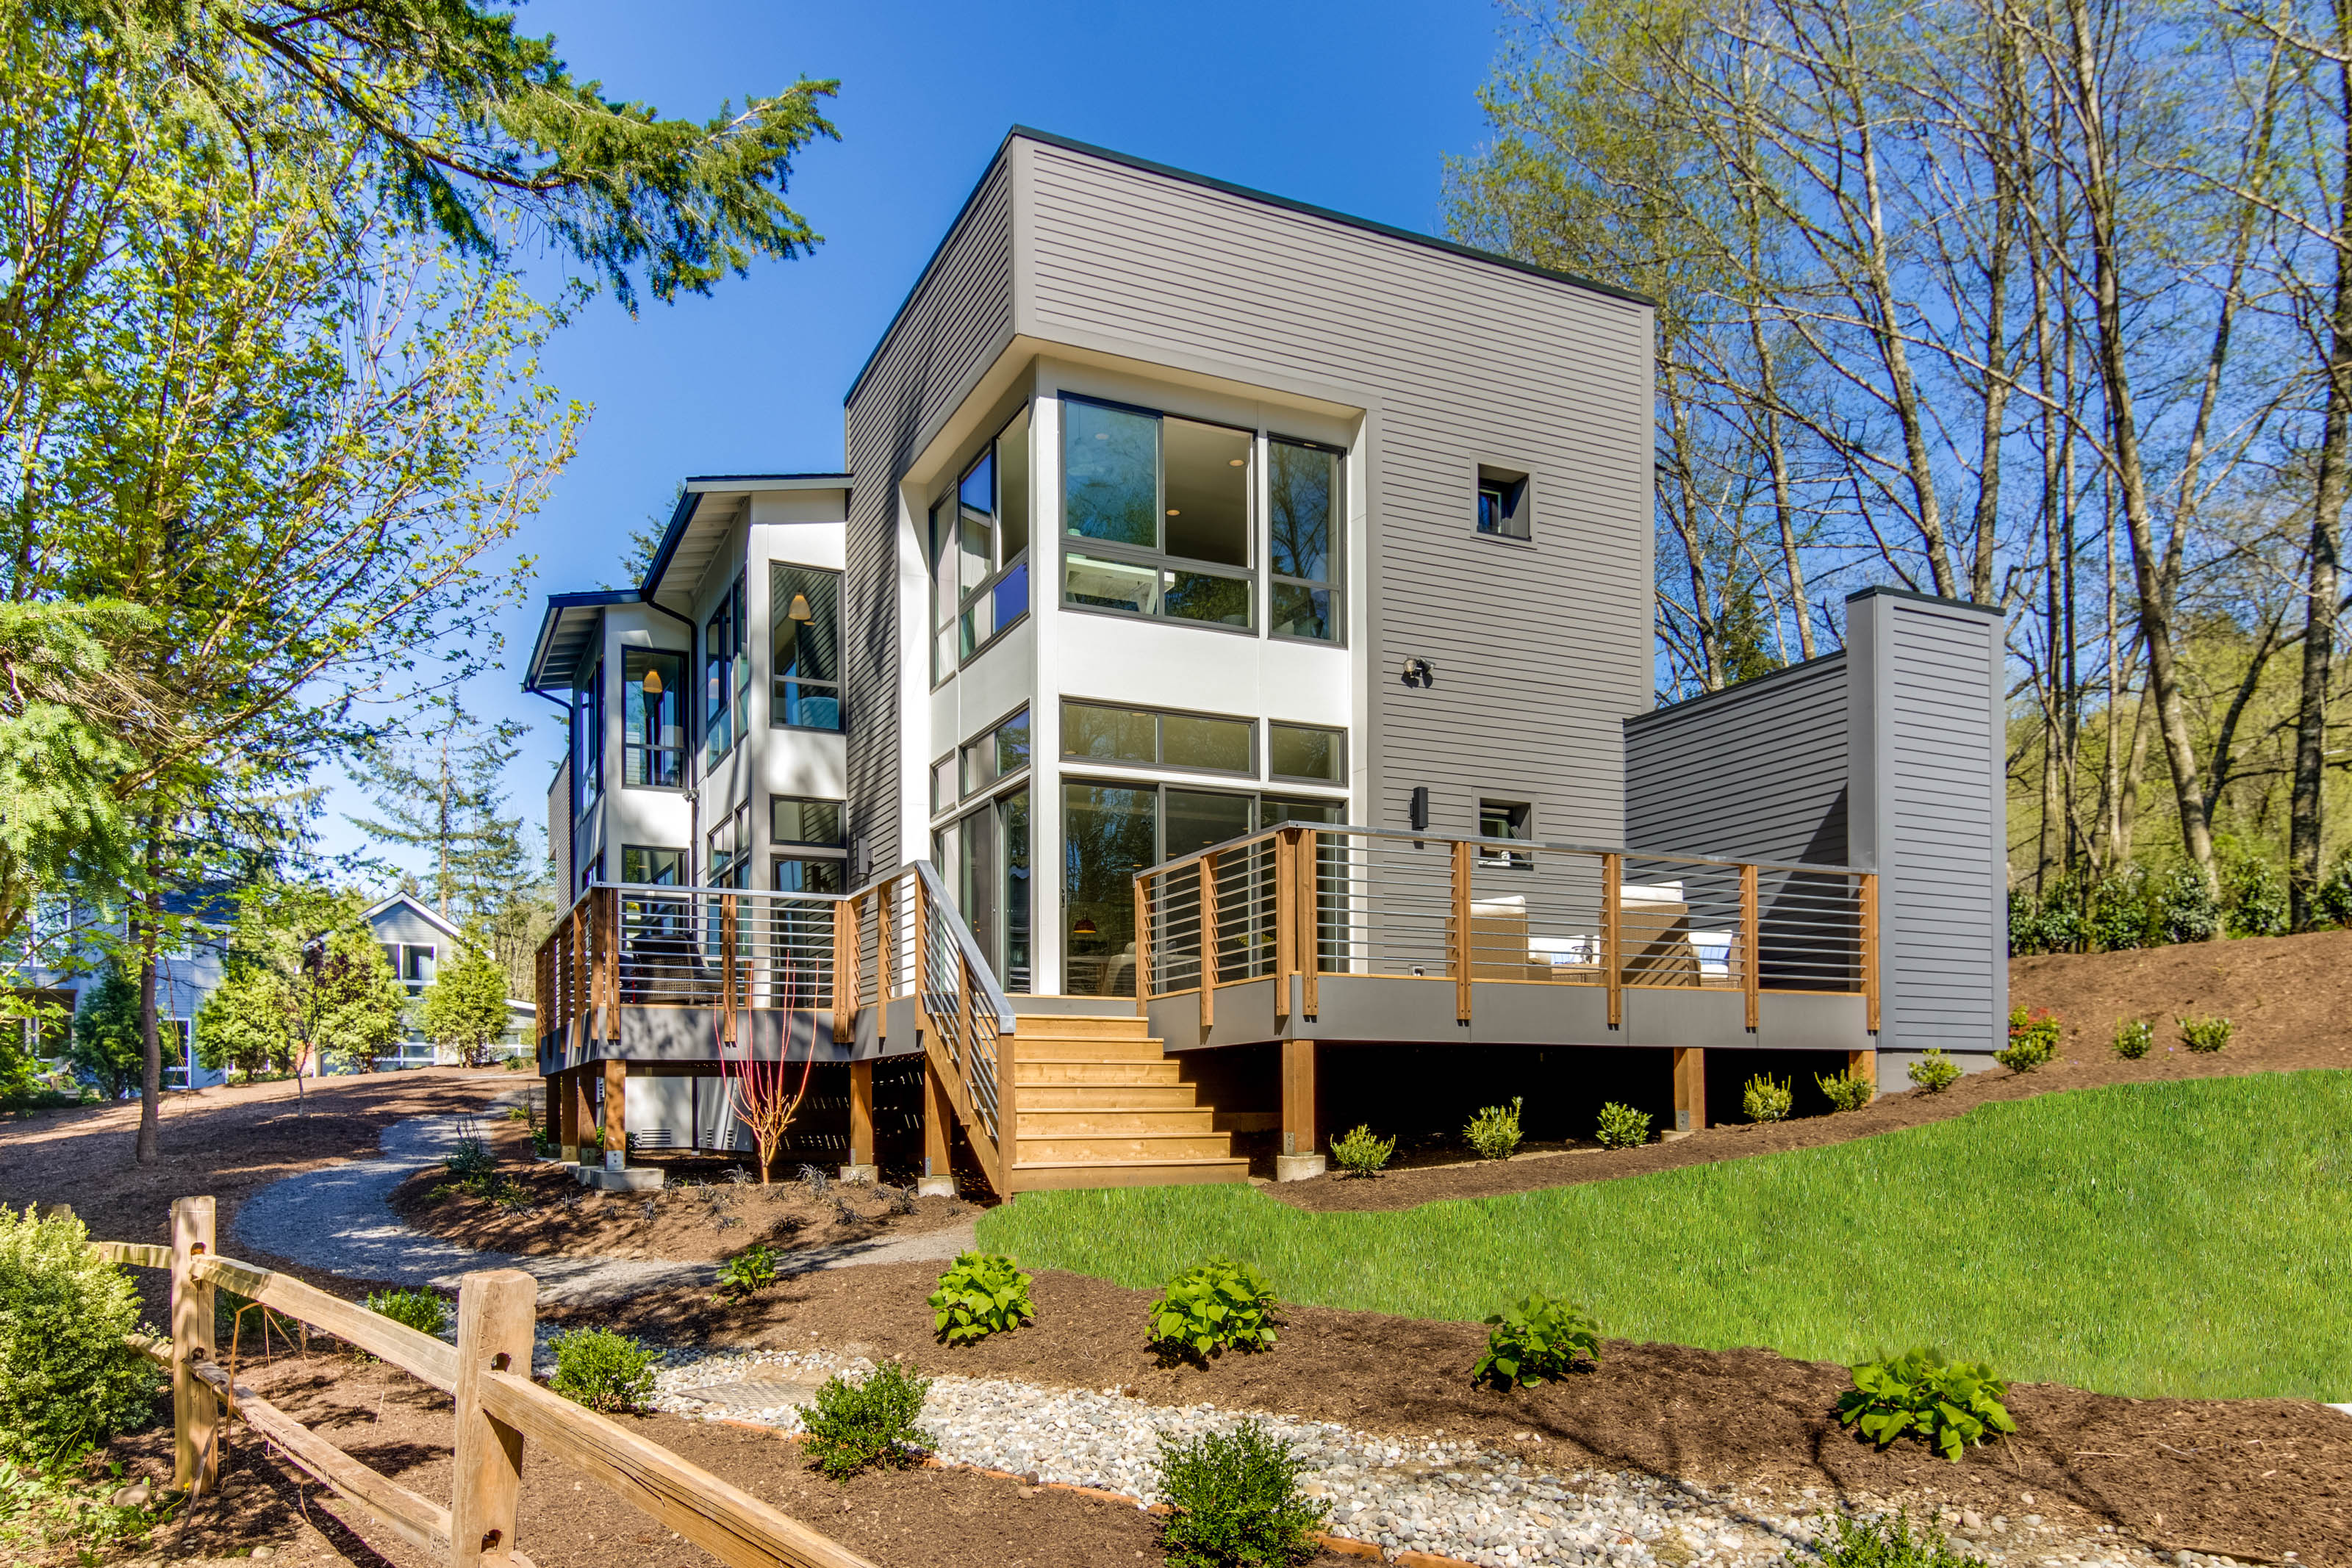 Single Family Home for Sale at Urban in the Country 4941 Lynwood Center Rd NE Bainbridge Island, Washington, 98110 United States